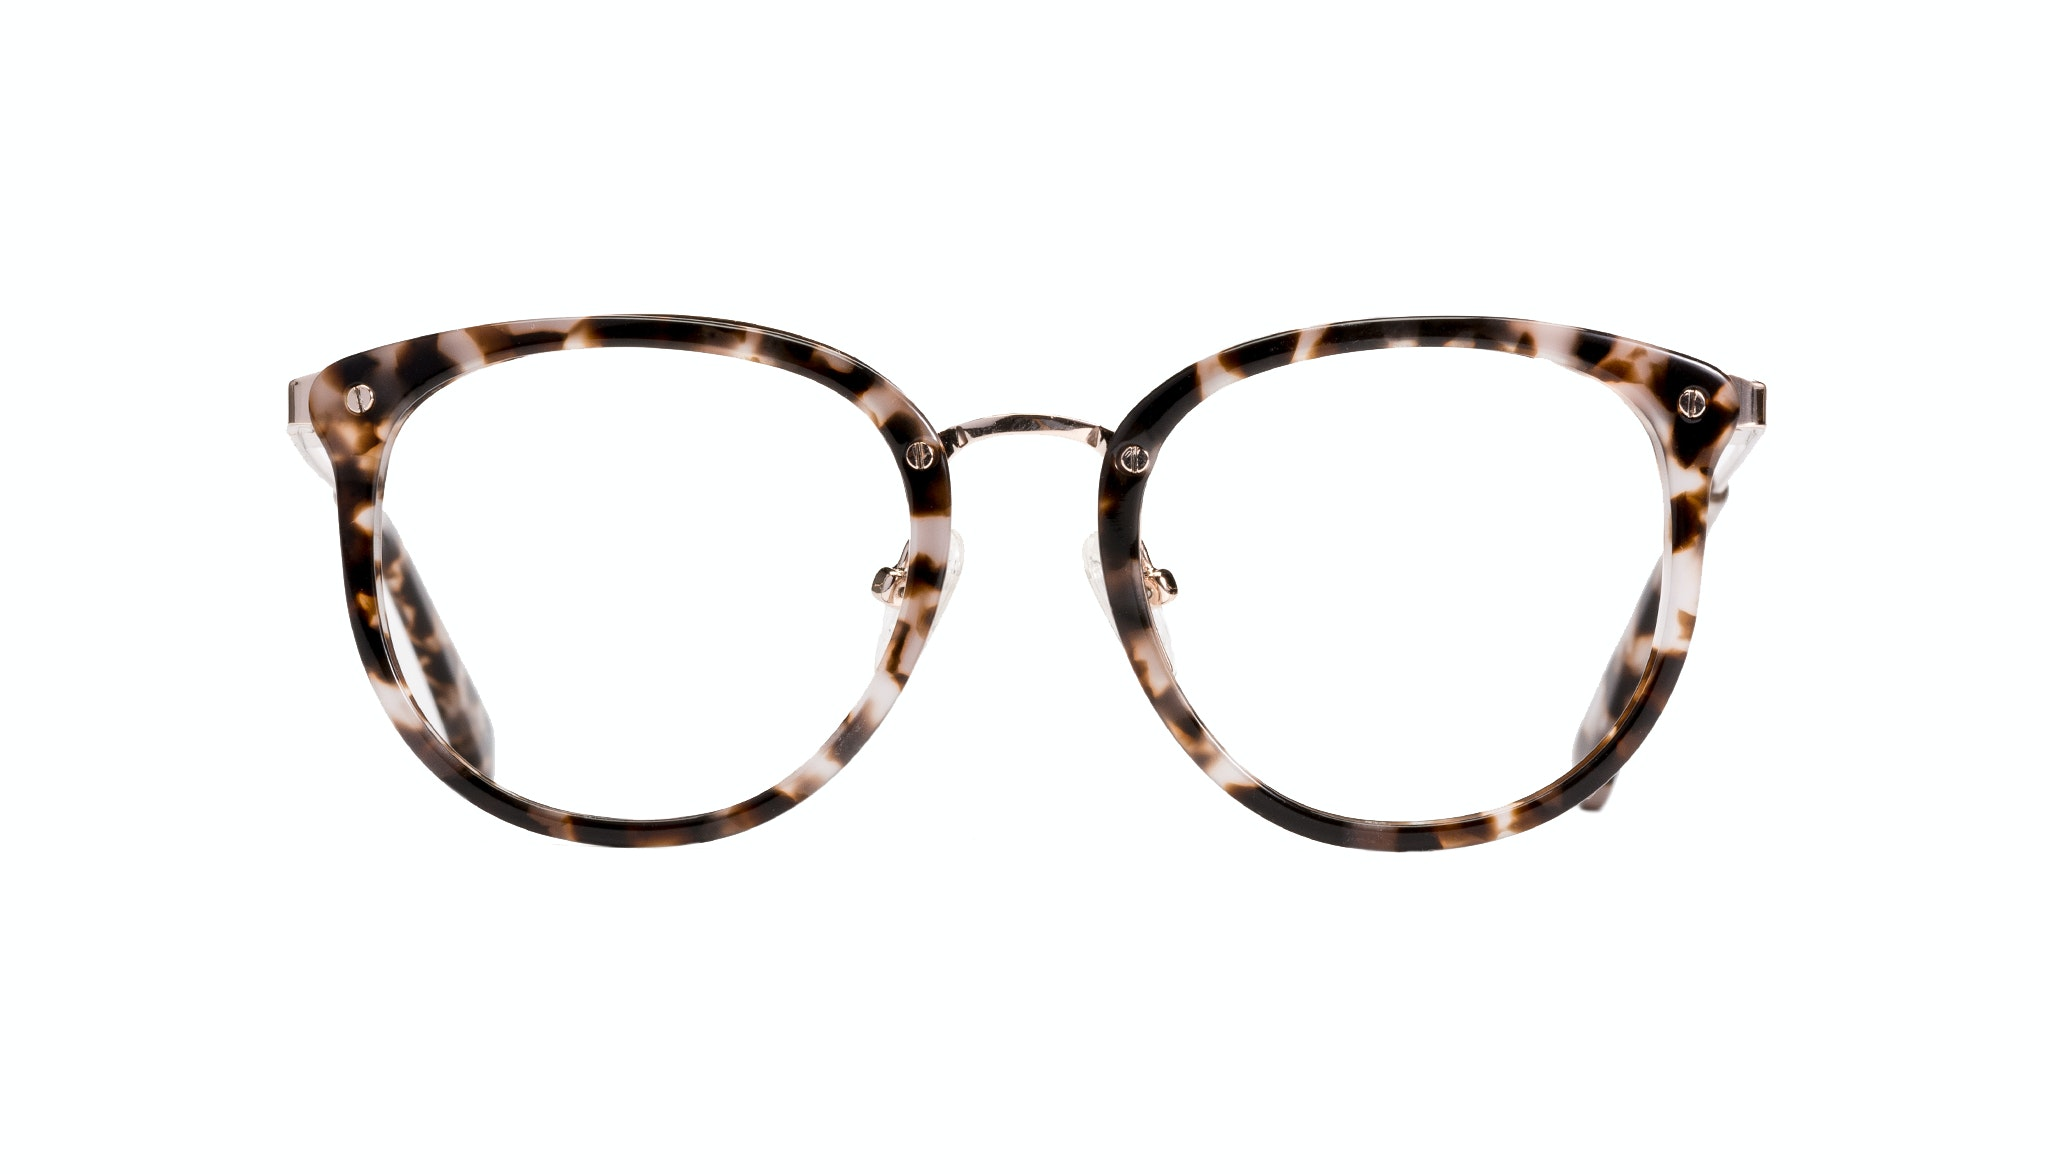 Affordable Fashion Glasses Cat Eye Round Eyeglasses Women Amaze Petite Mocha Tort